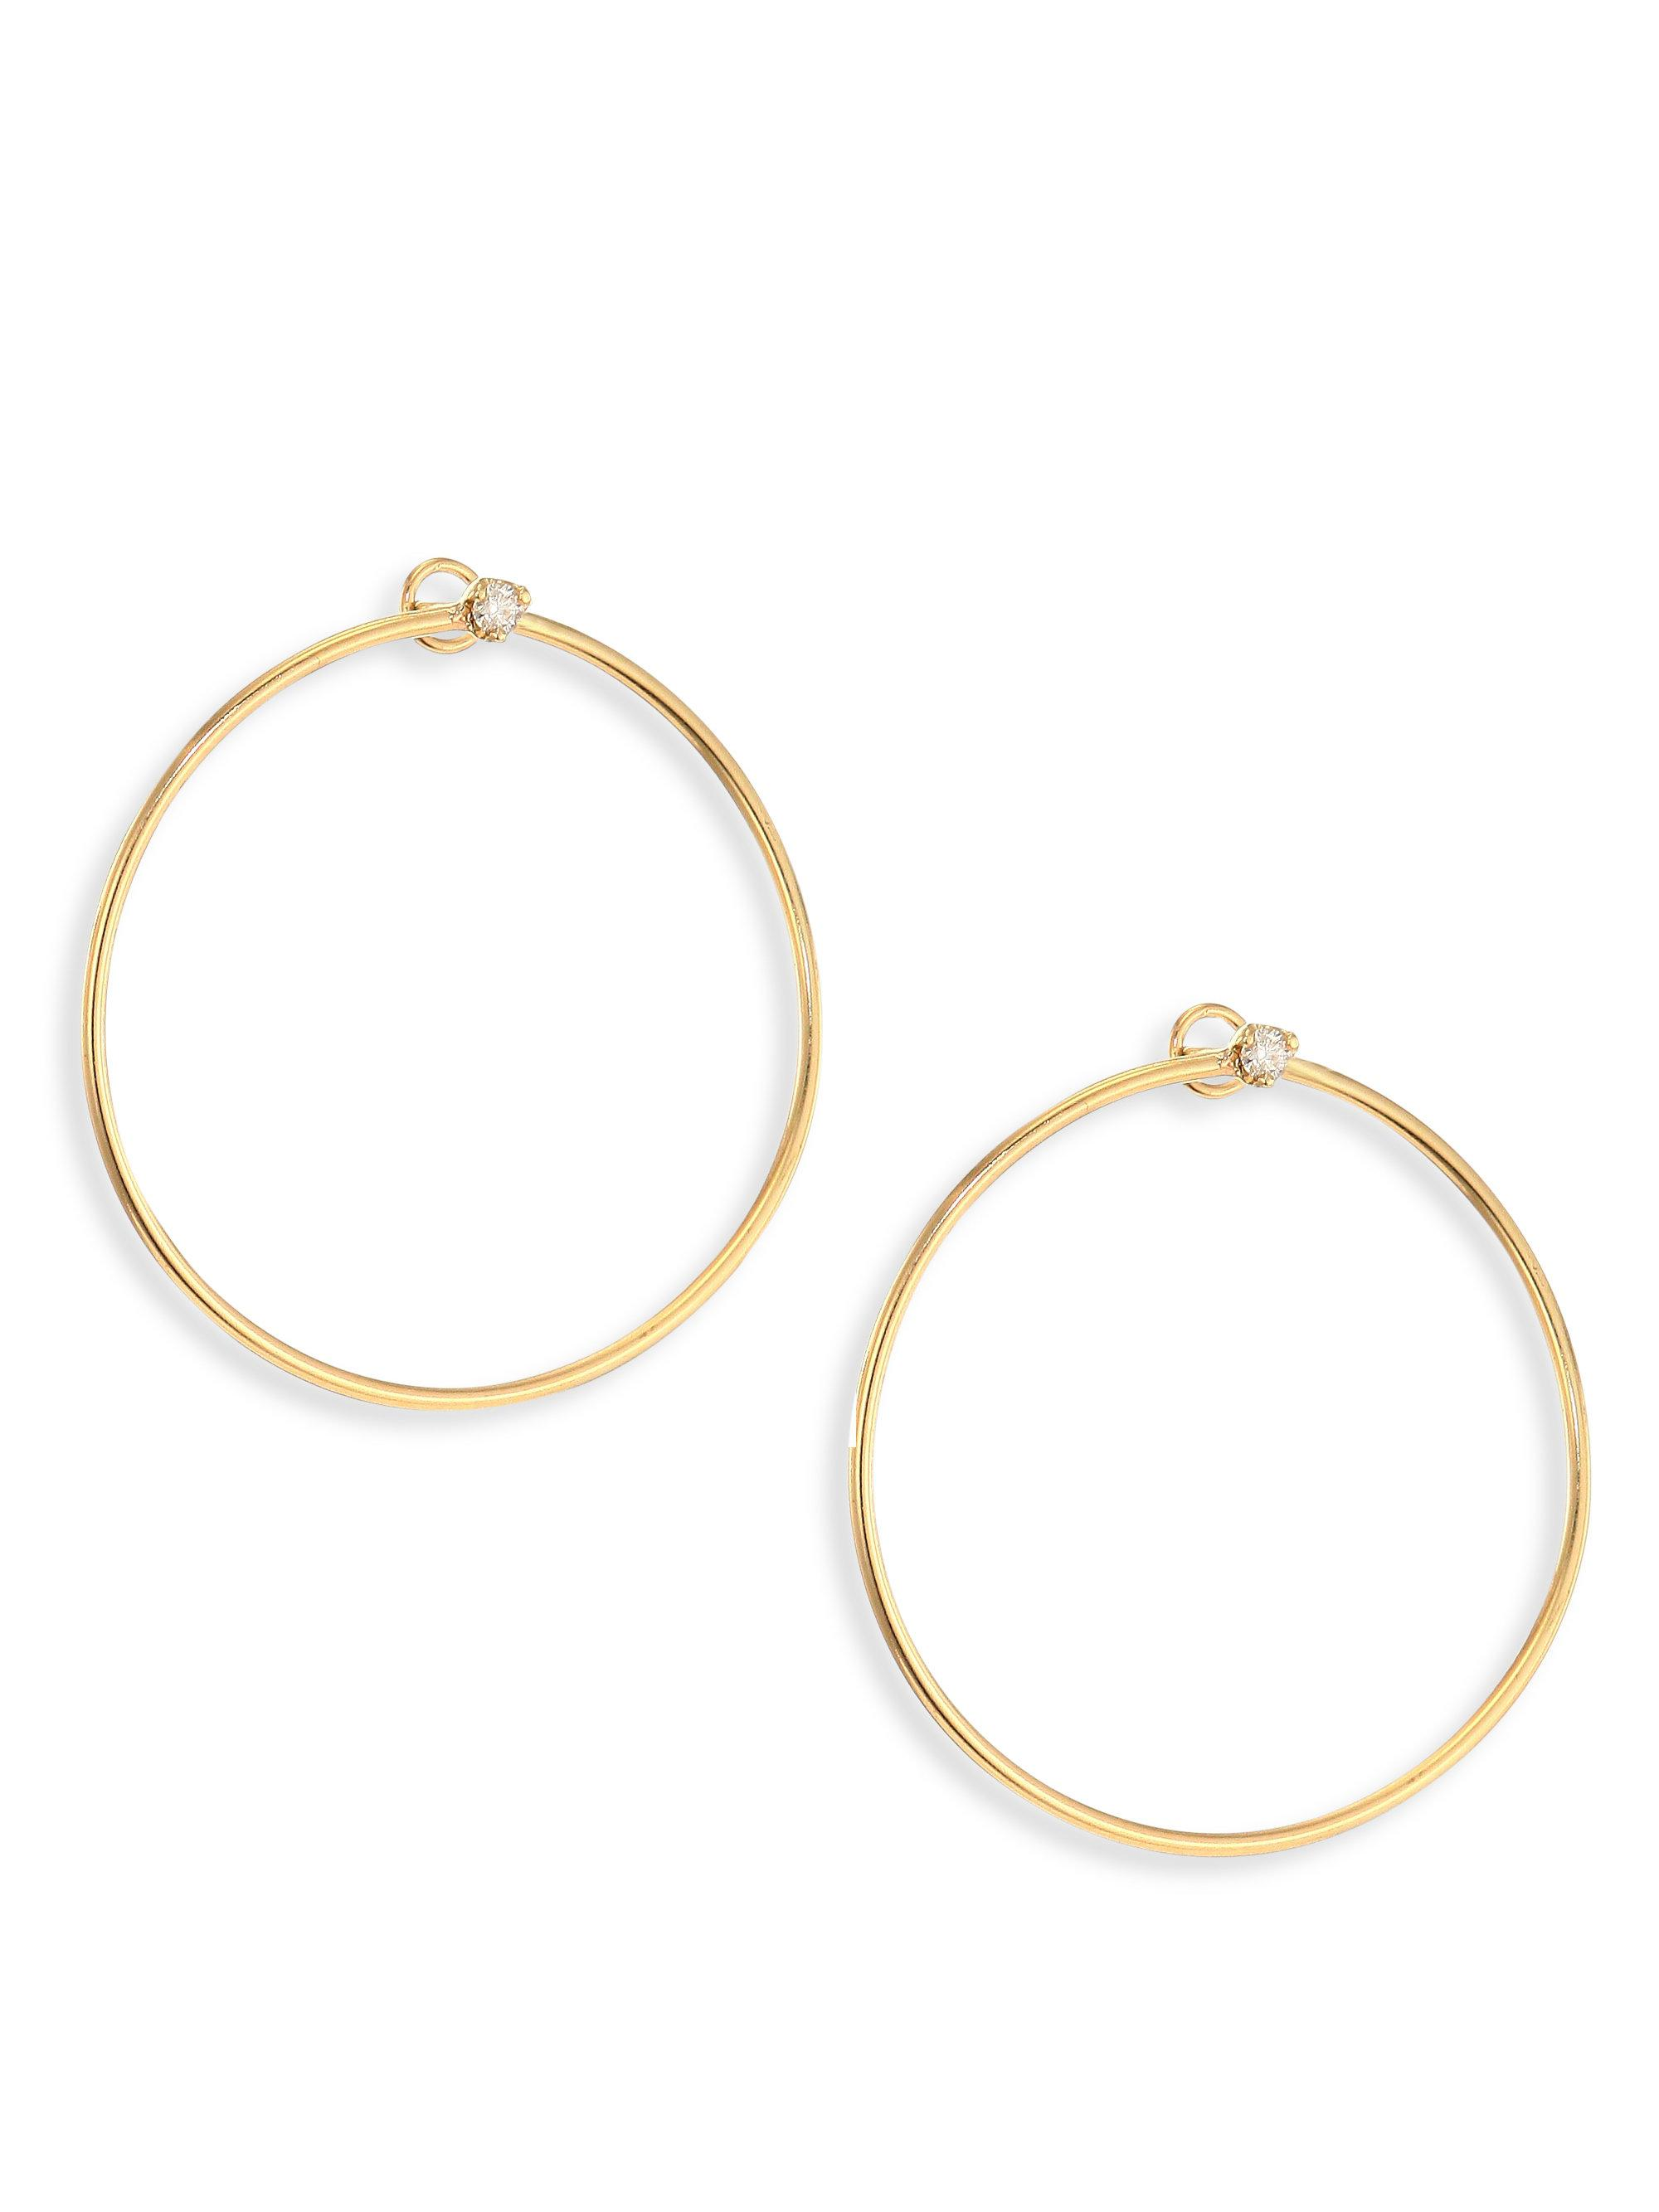 loop stud studs earring featuring eye set pin hoop and catching chain in the